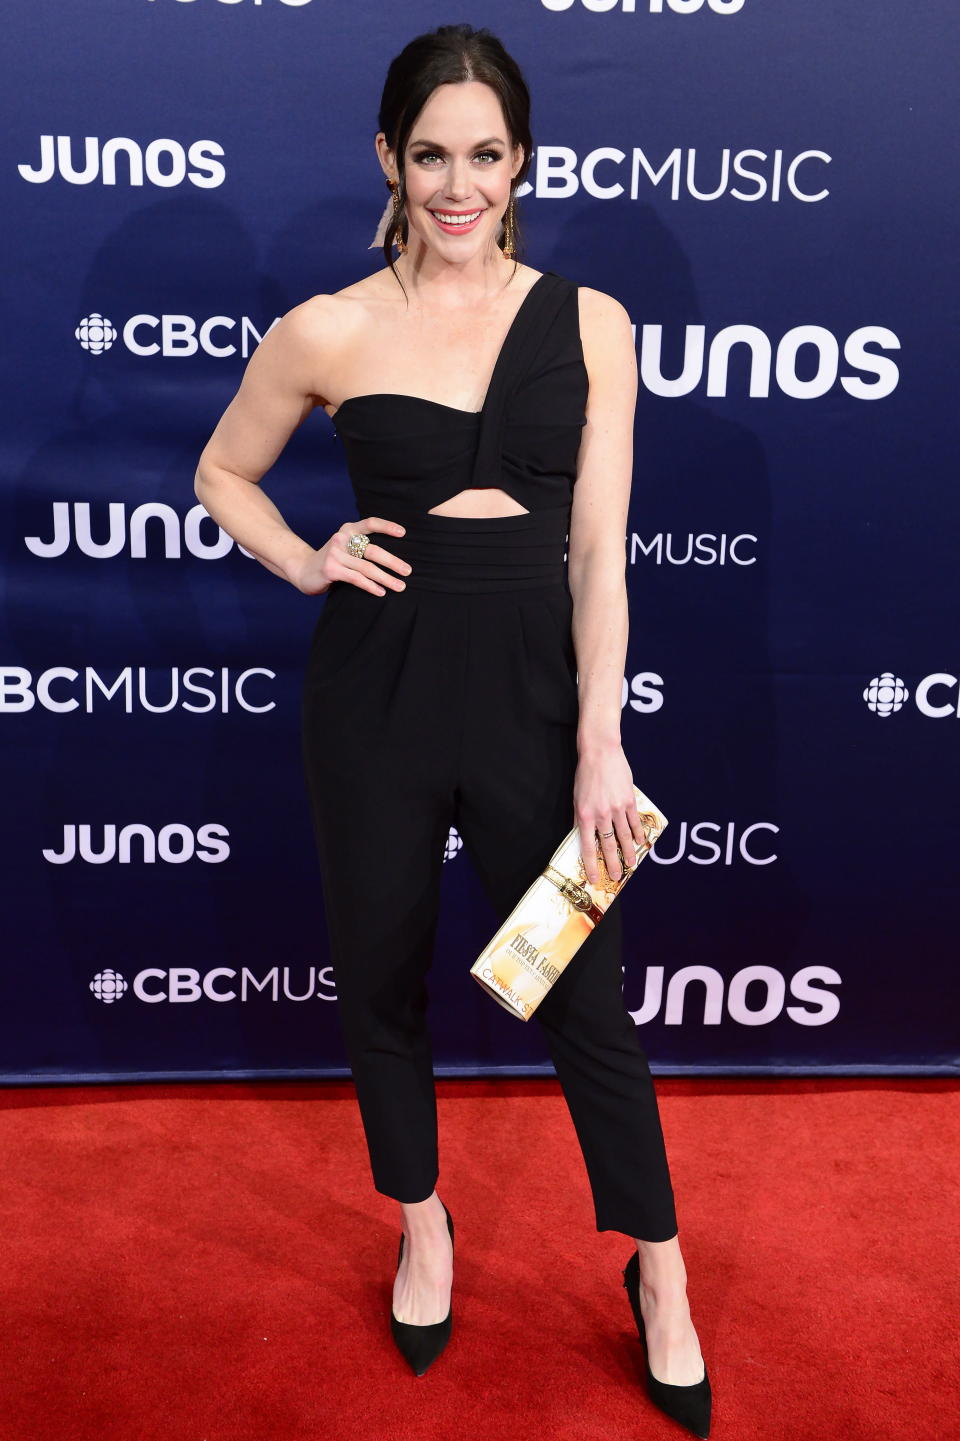 <p>The Olympic gold medalist ruled the red carpet in a one-shouldered pantsuit with cutout detailing. </p>